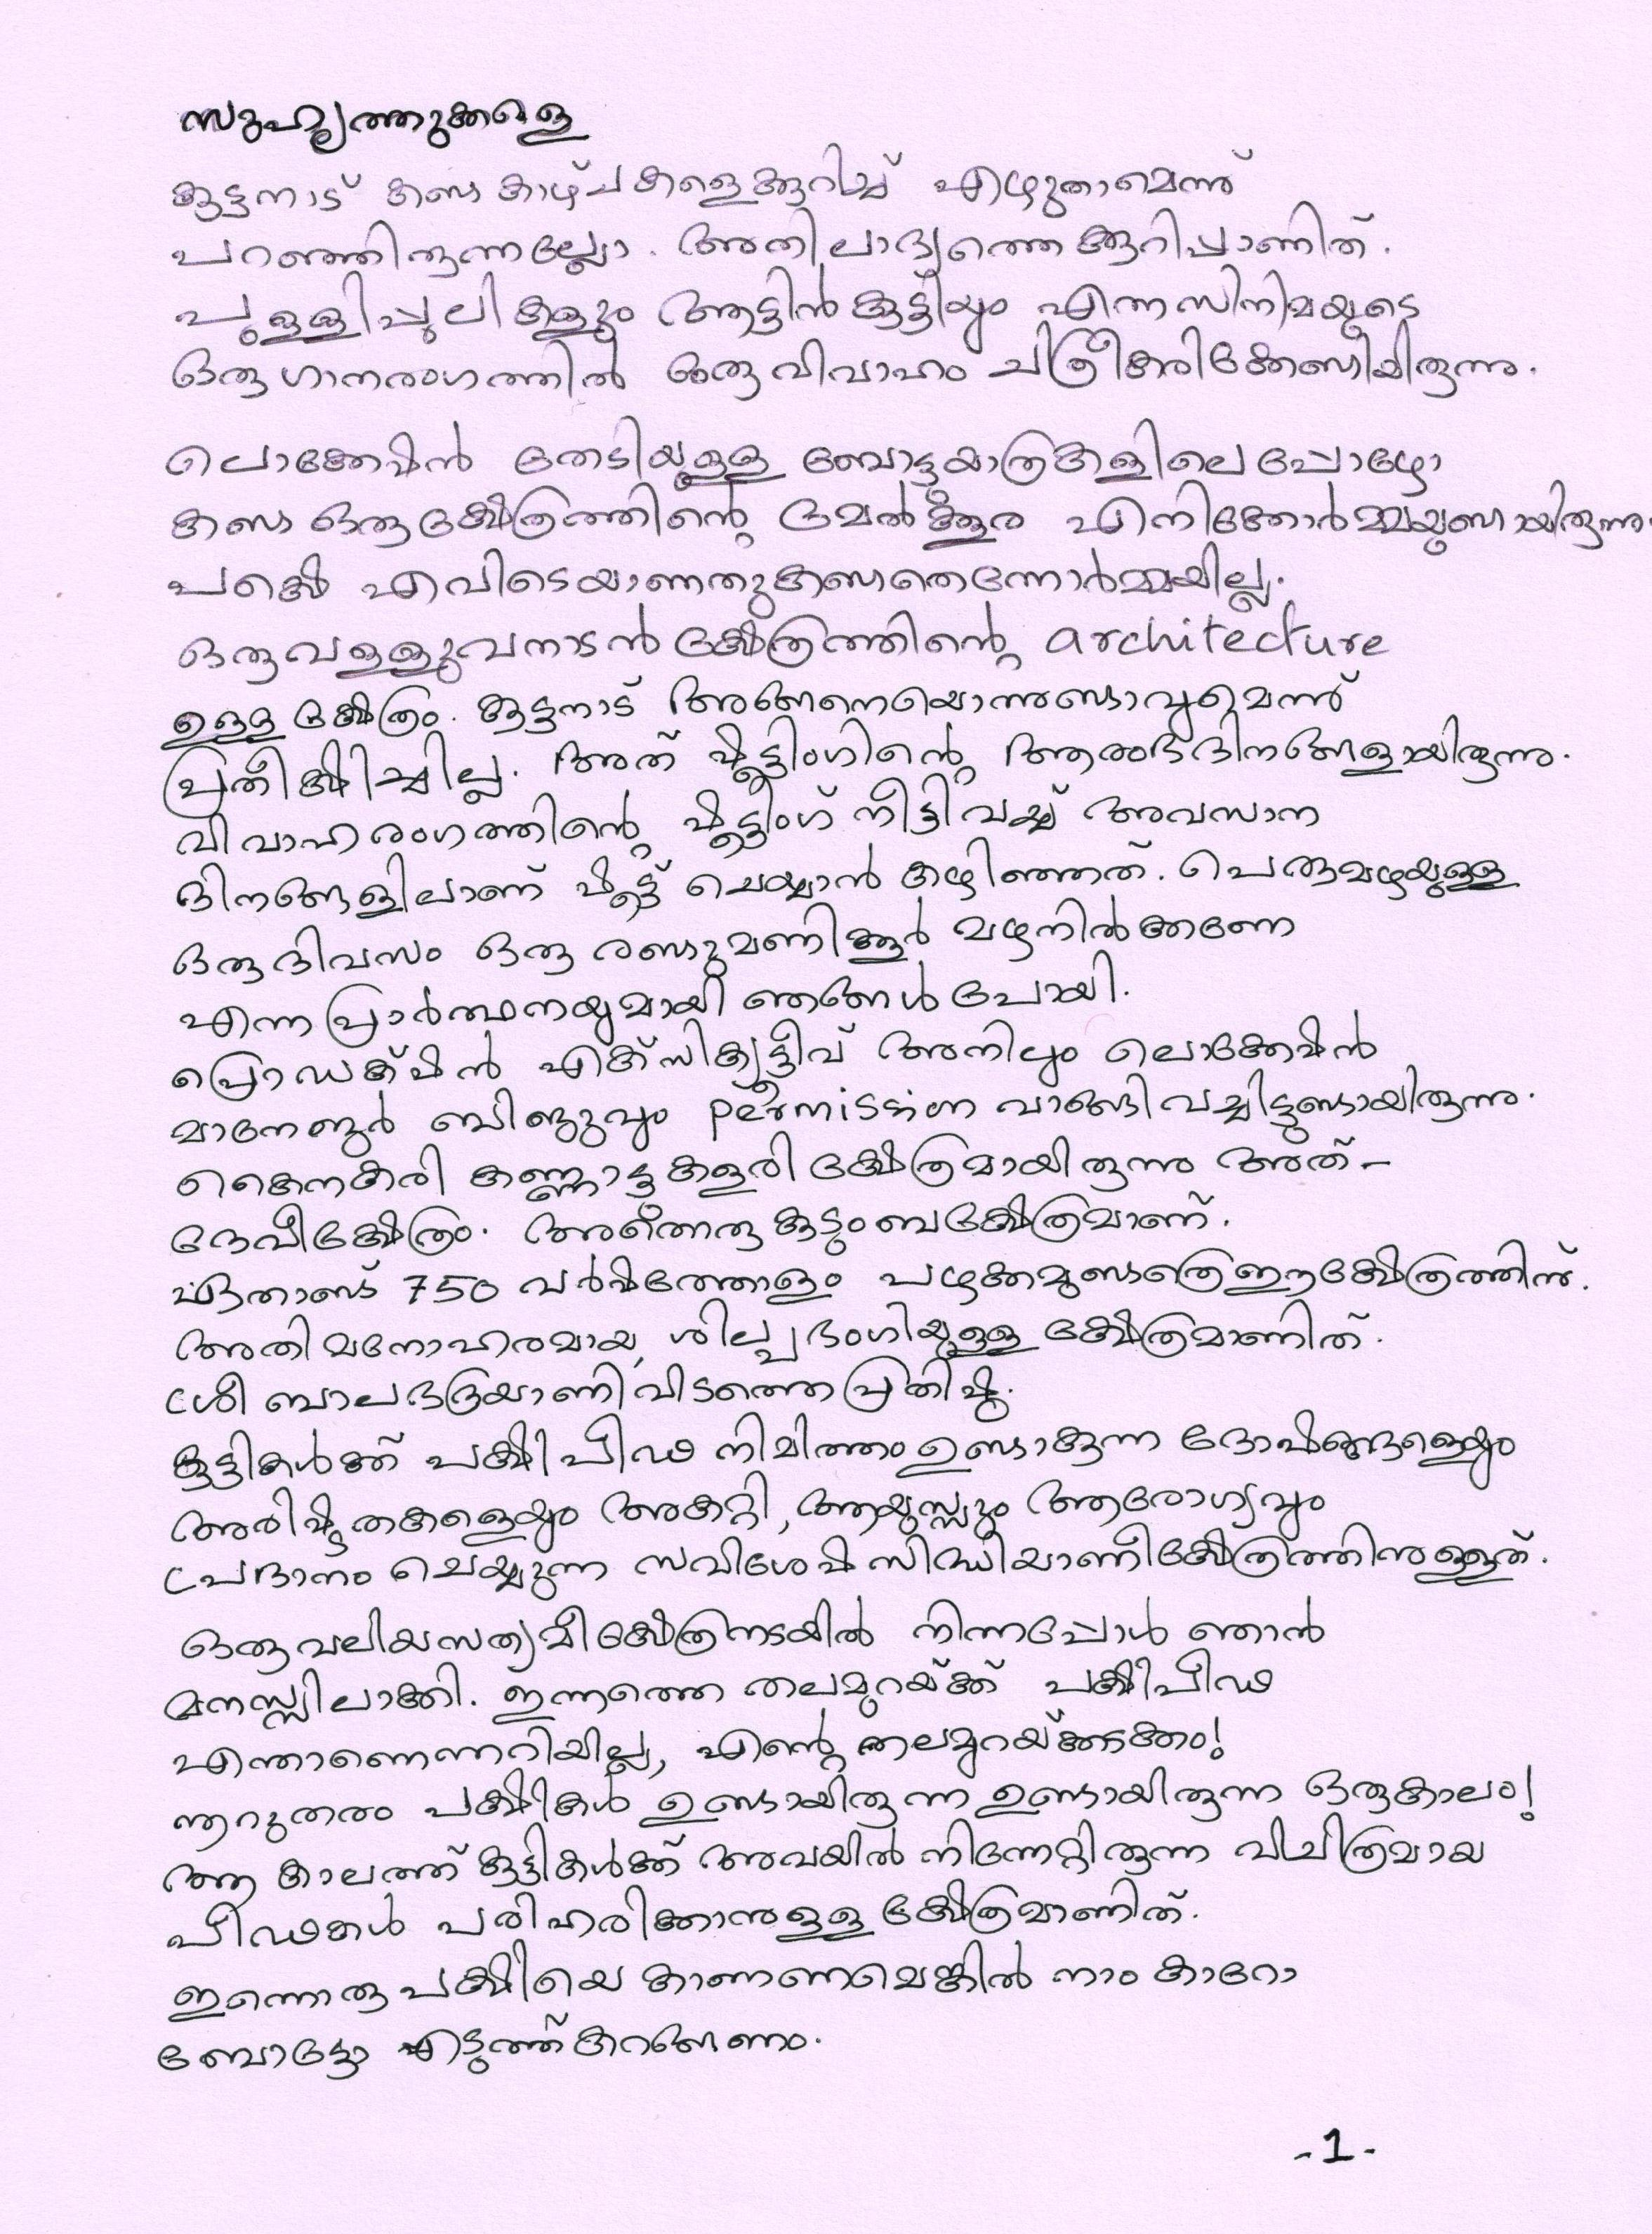 script writing in malayalam In order to write malayalam with the east syriac script, new letters had to be created, as syriac has only 22 letters used to write: suriyani malayalam.